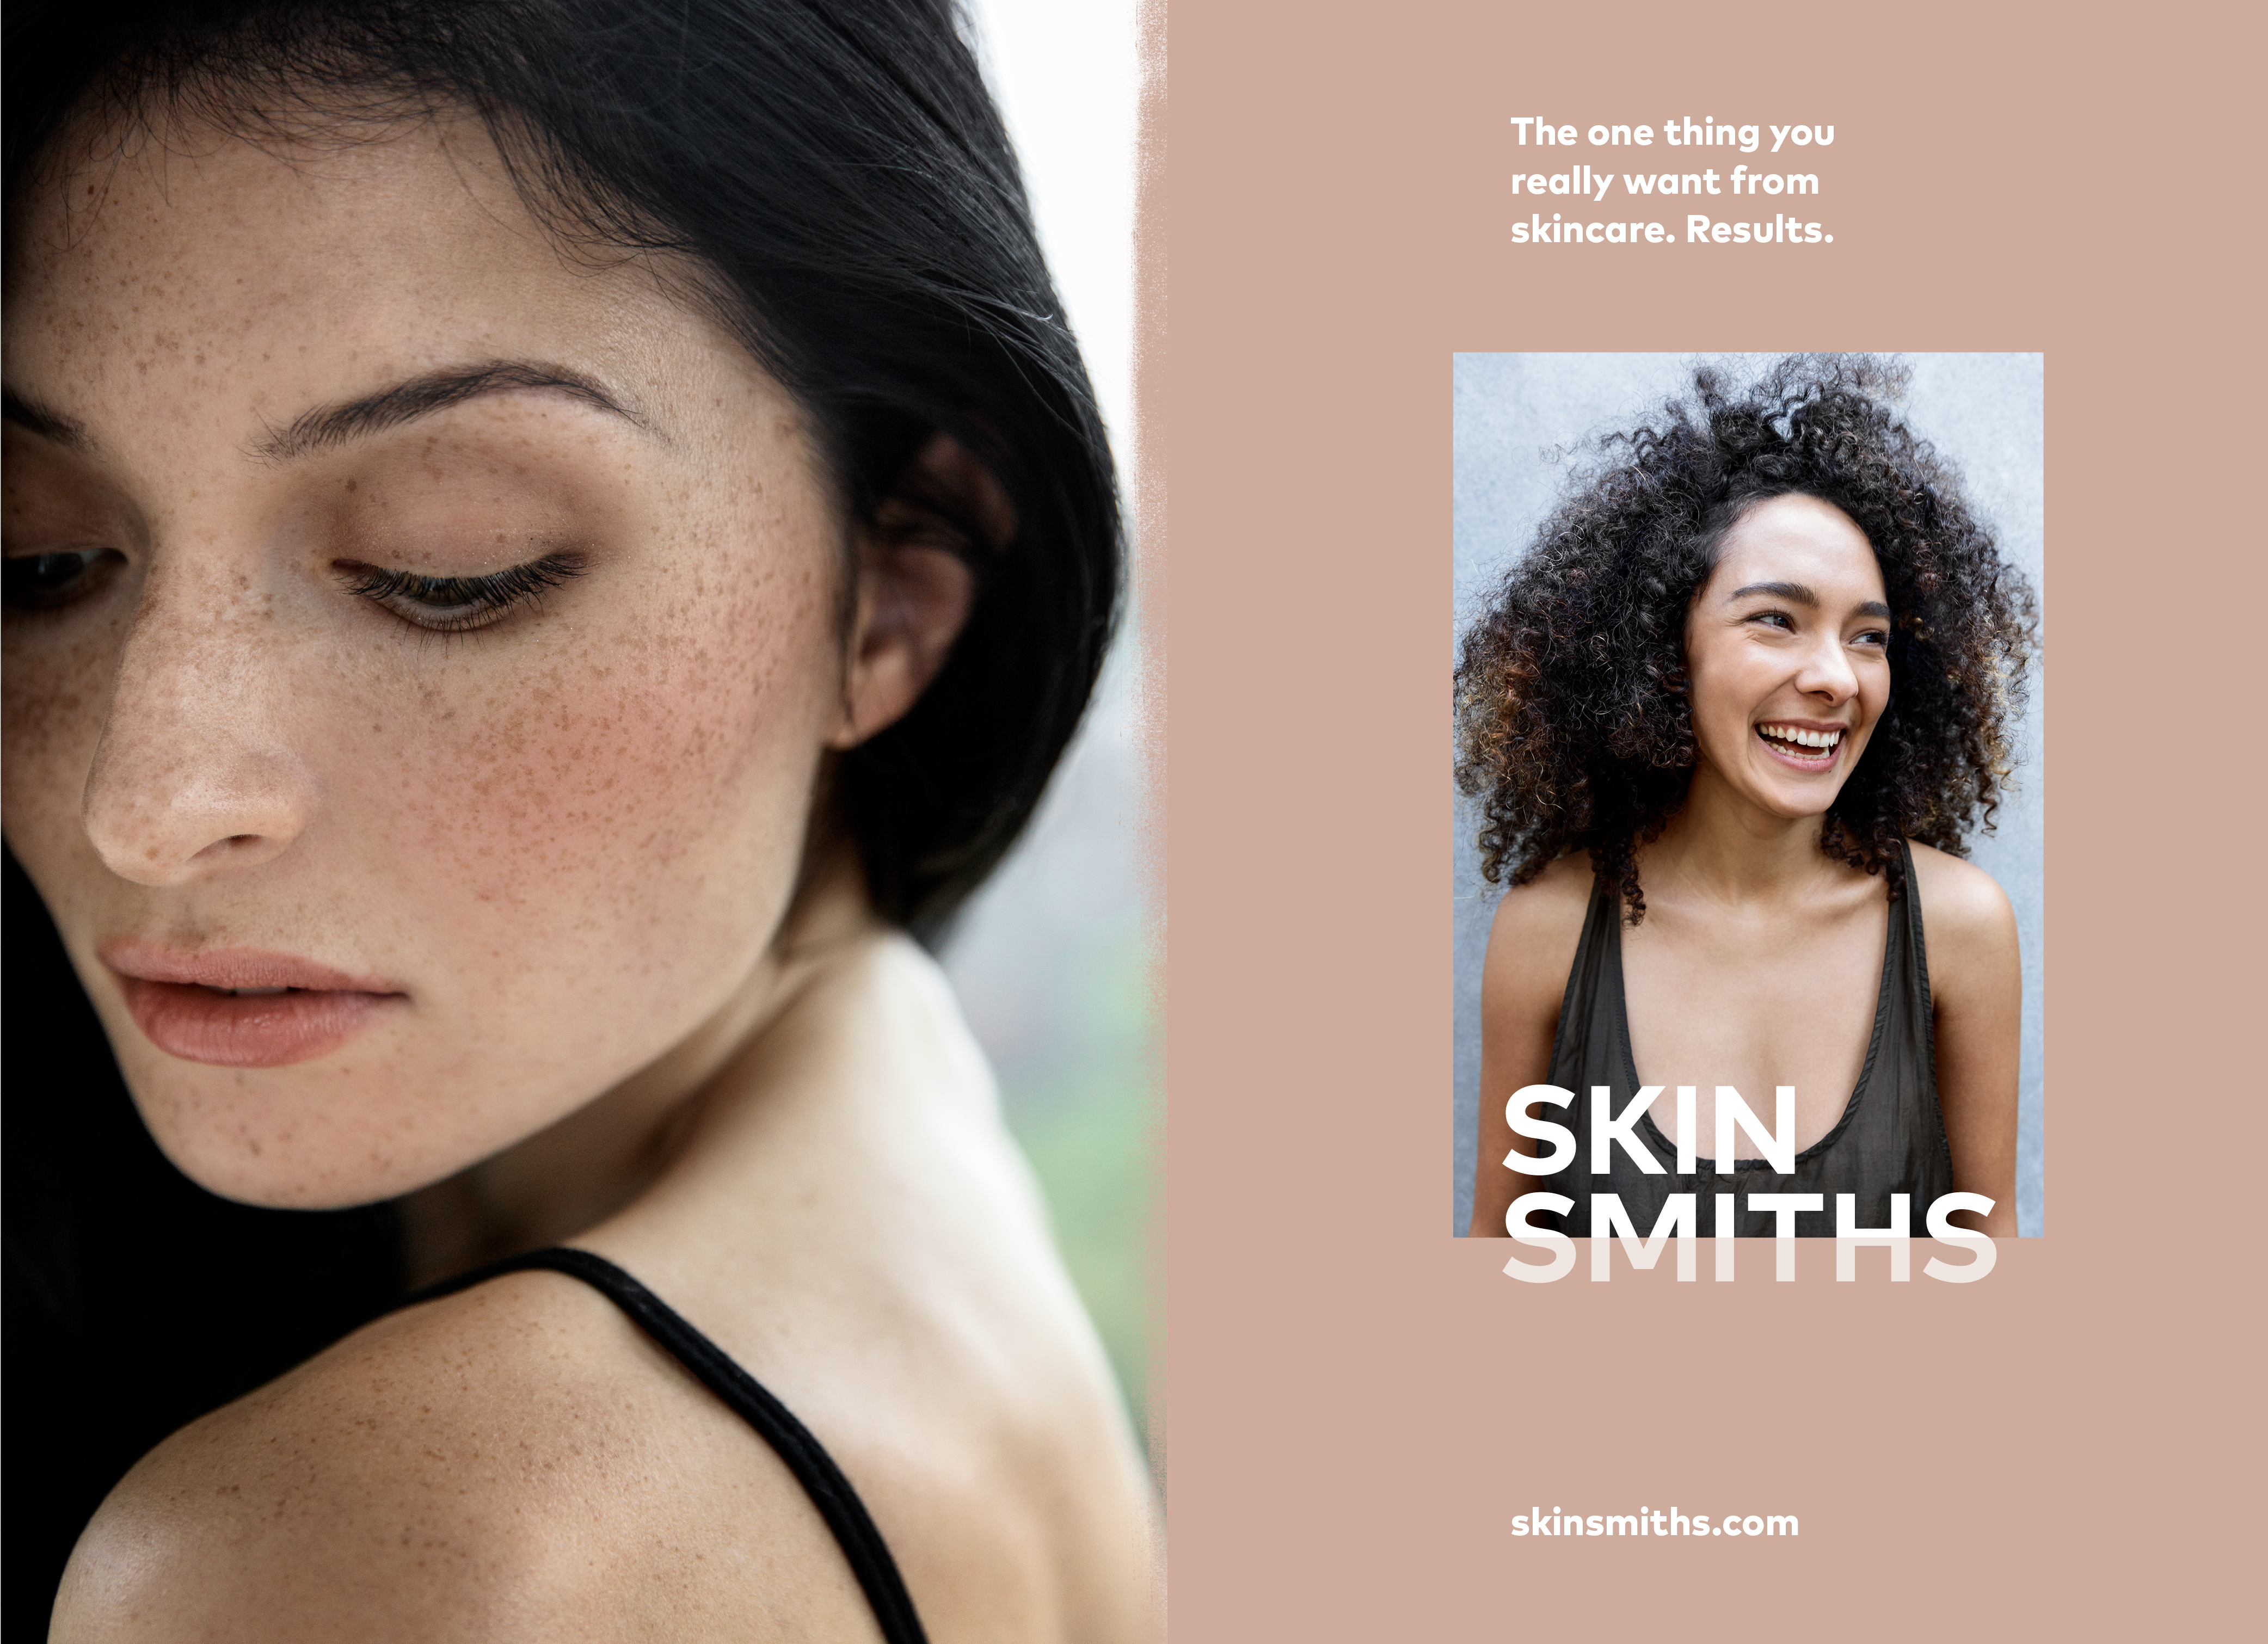 https://tanamitchell.com/wp-content/uploads/2018/07/SkinSmiths2018-2000x1450px8.jpg